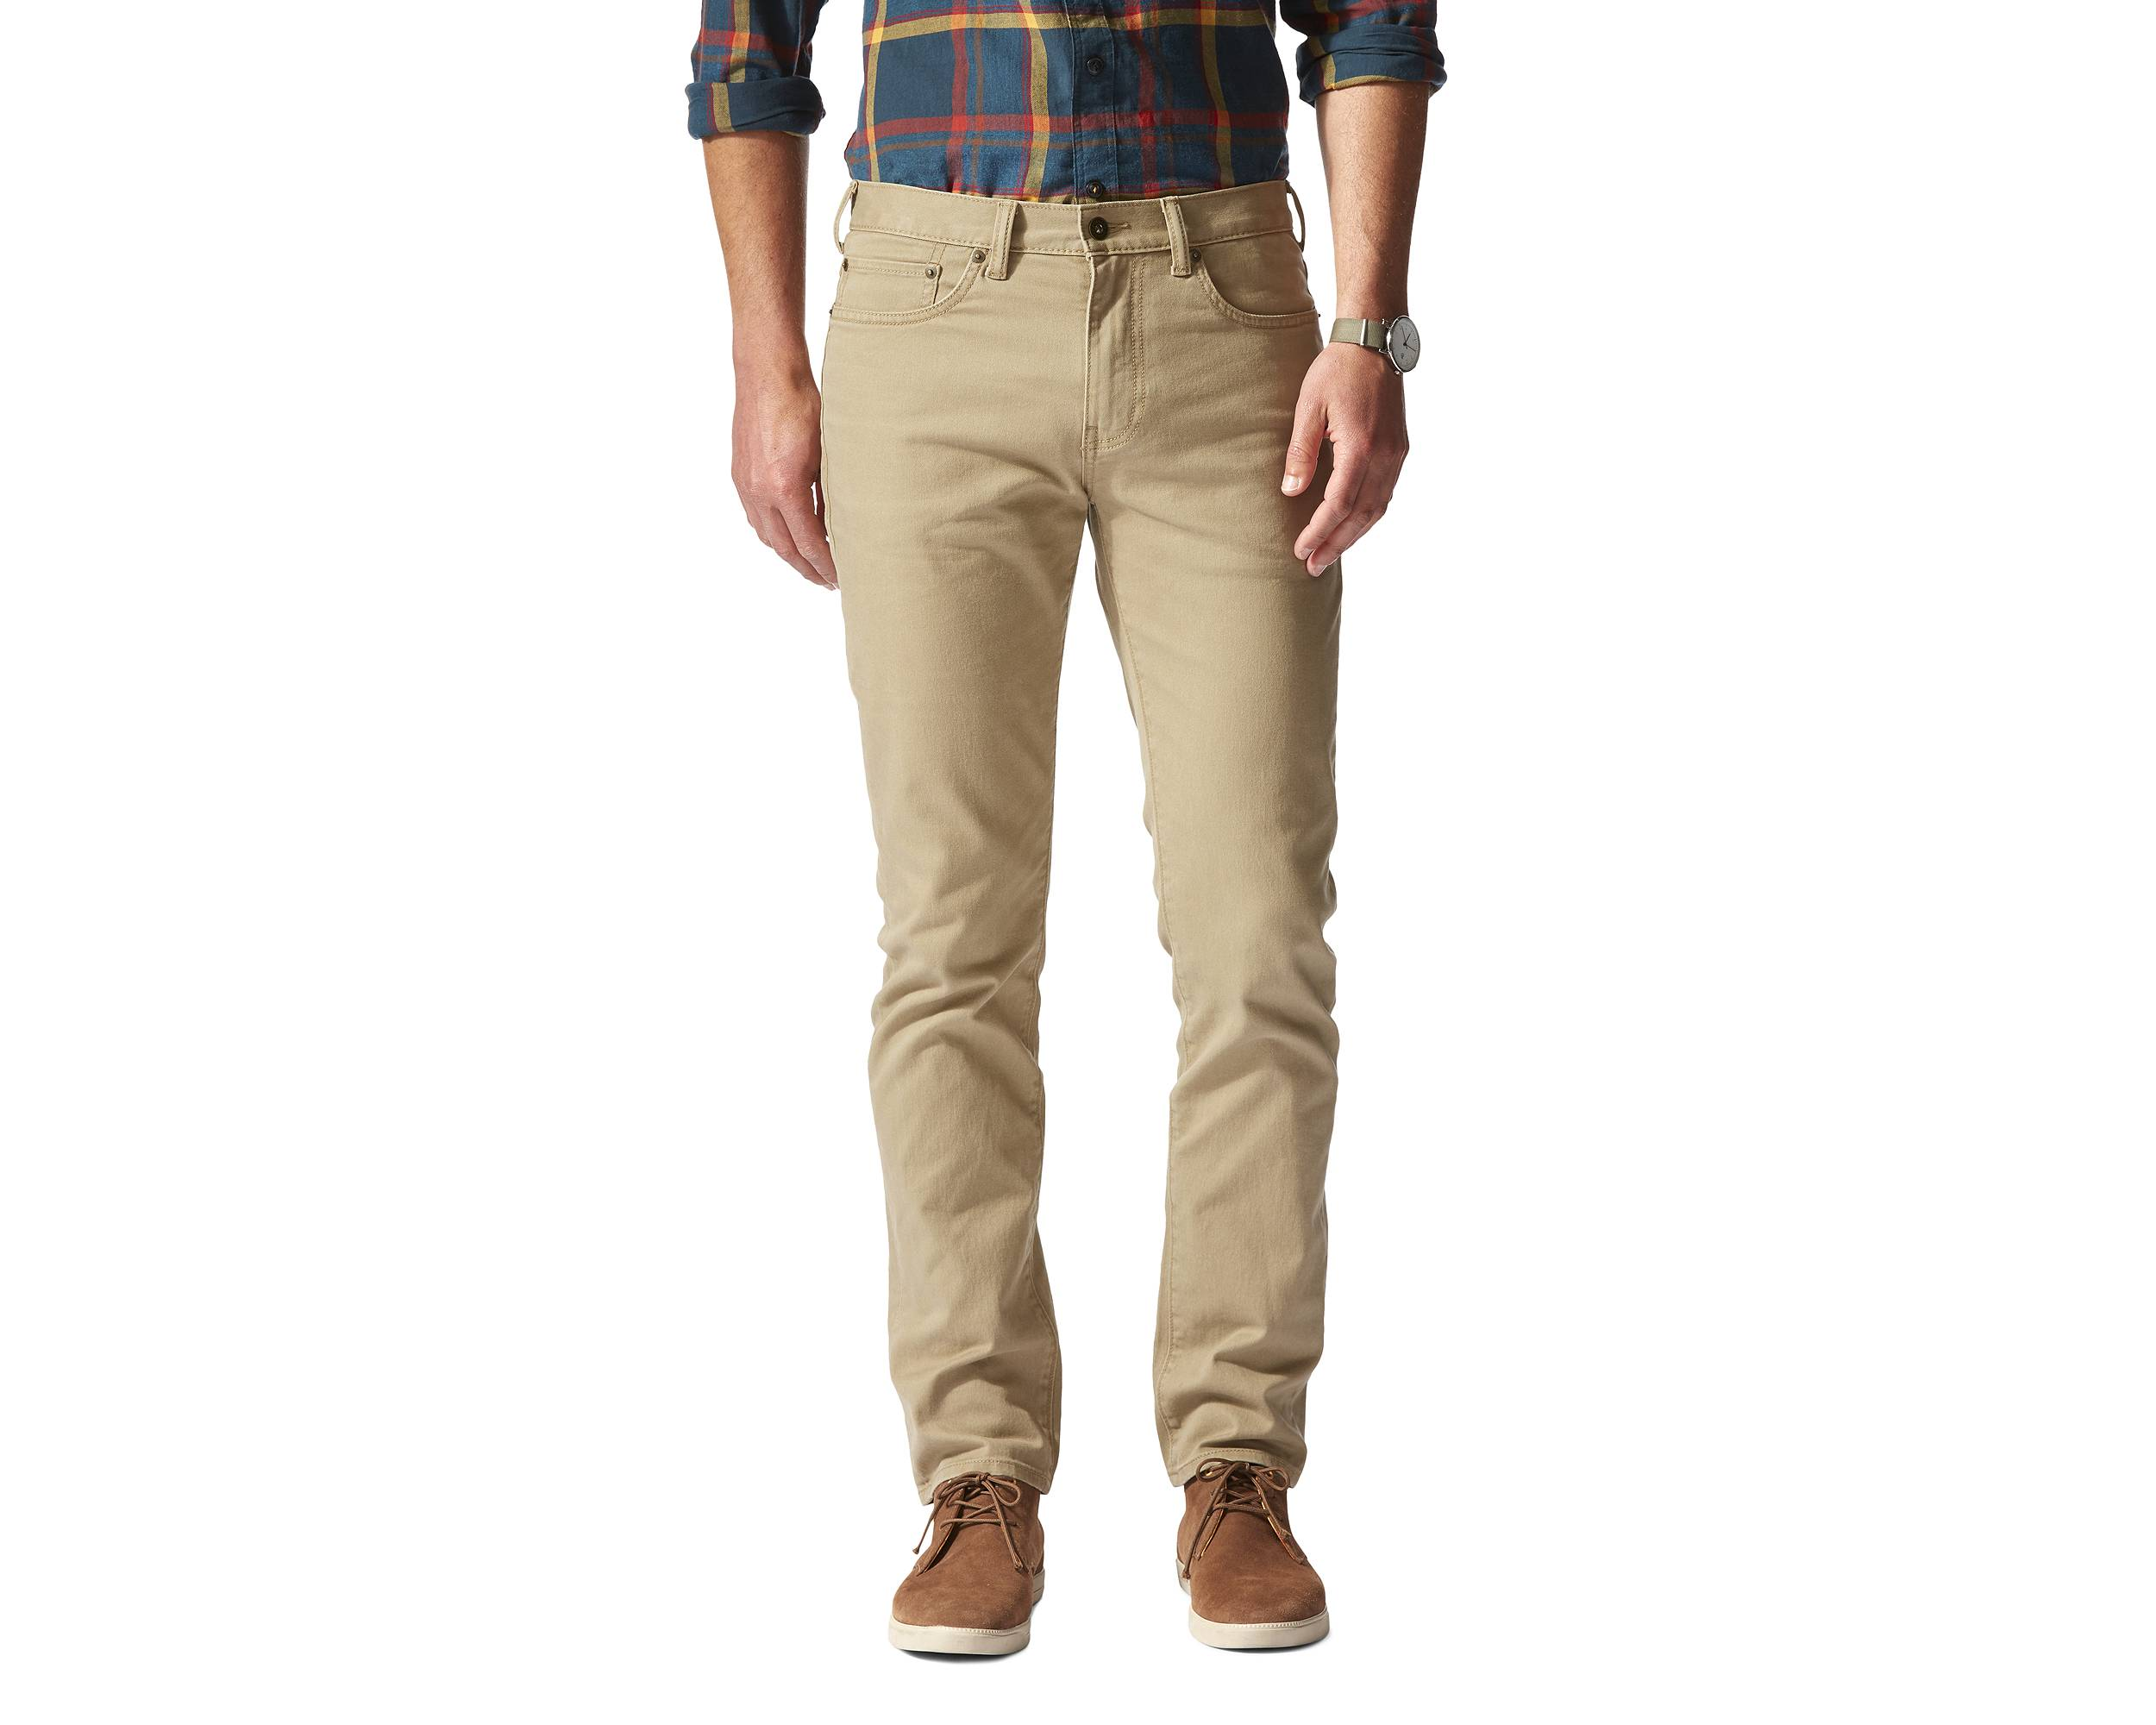 Picture Of Khaki Pants